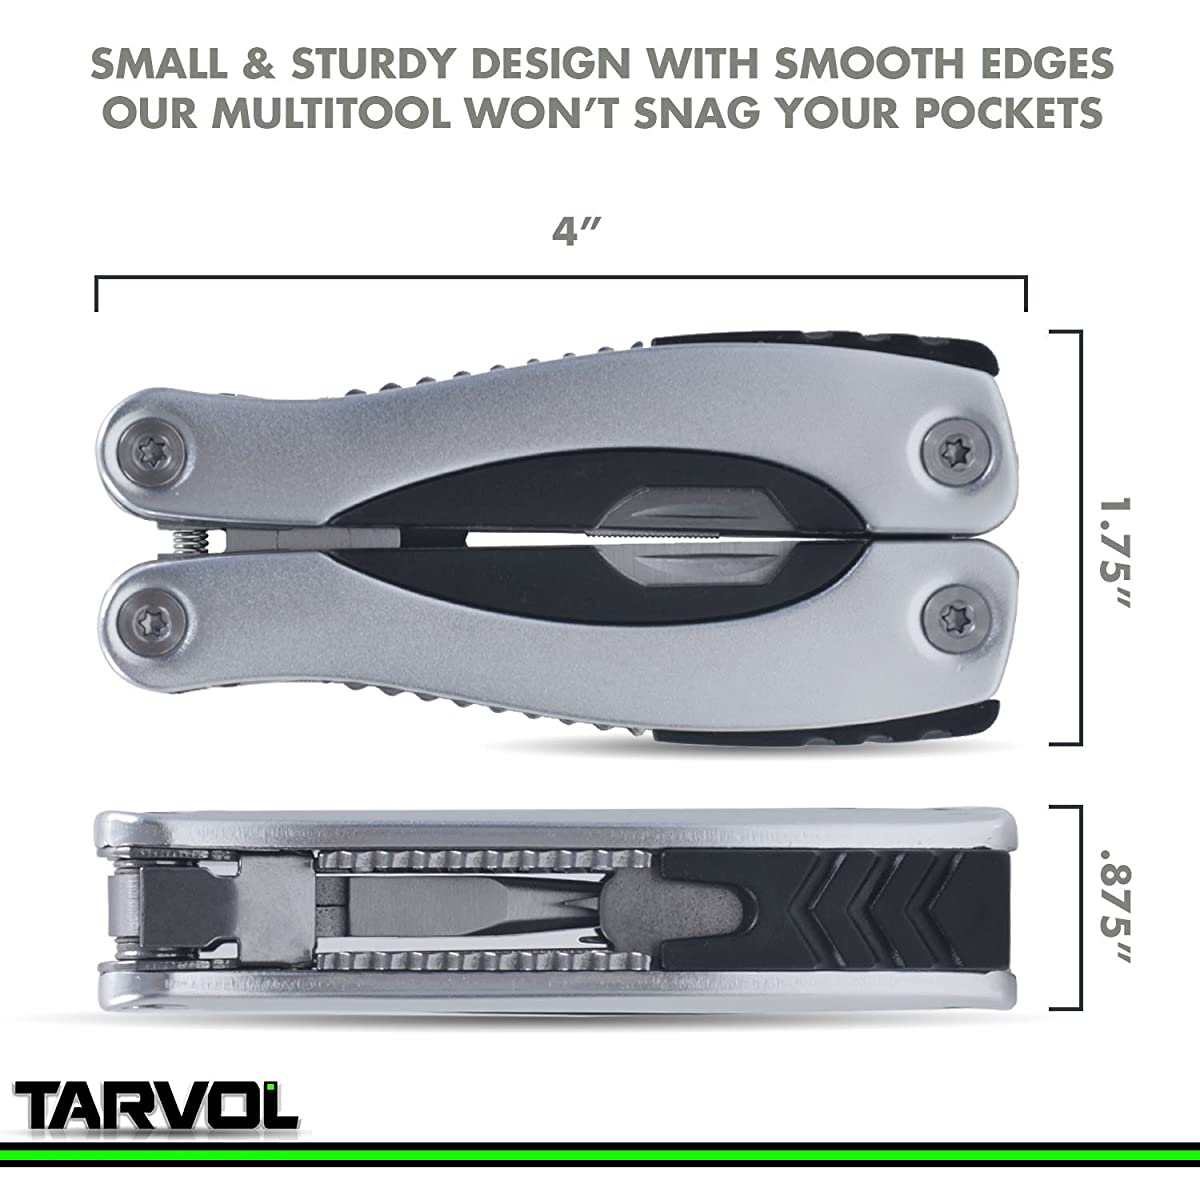 14 in 1 MultiTool (HARDENED STEEL) Multi Purpose Pliers, Knife, Ruler, Cable Cutter, Needle Nose Pliers, Saw, File, Screwdrivers, and More! Carry Case Included!